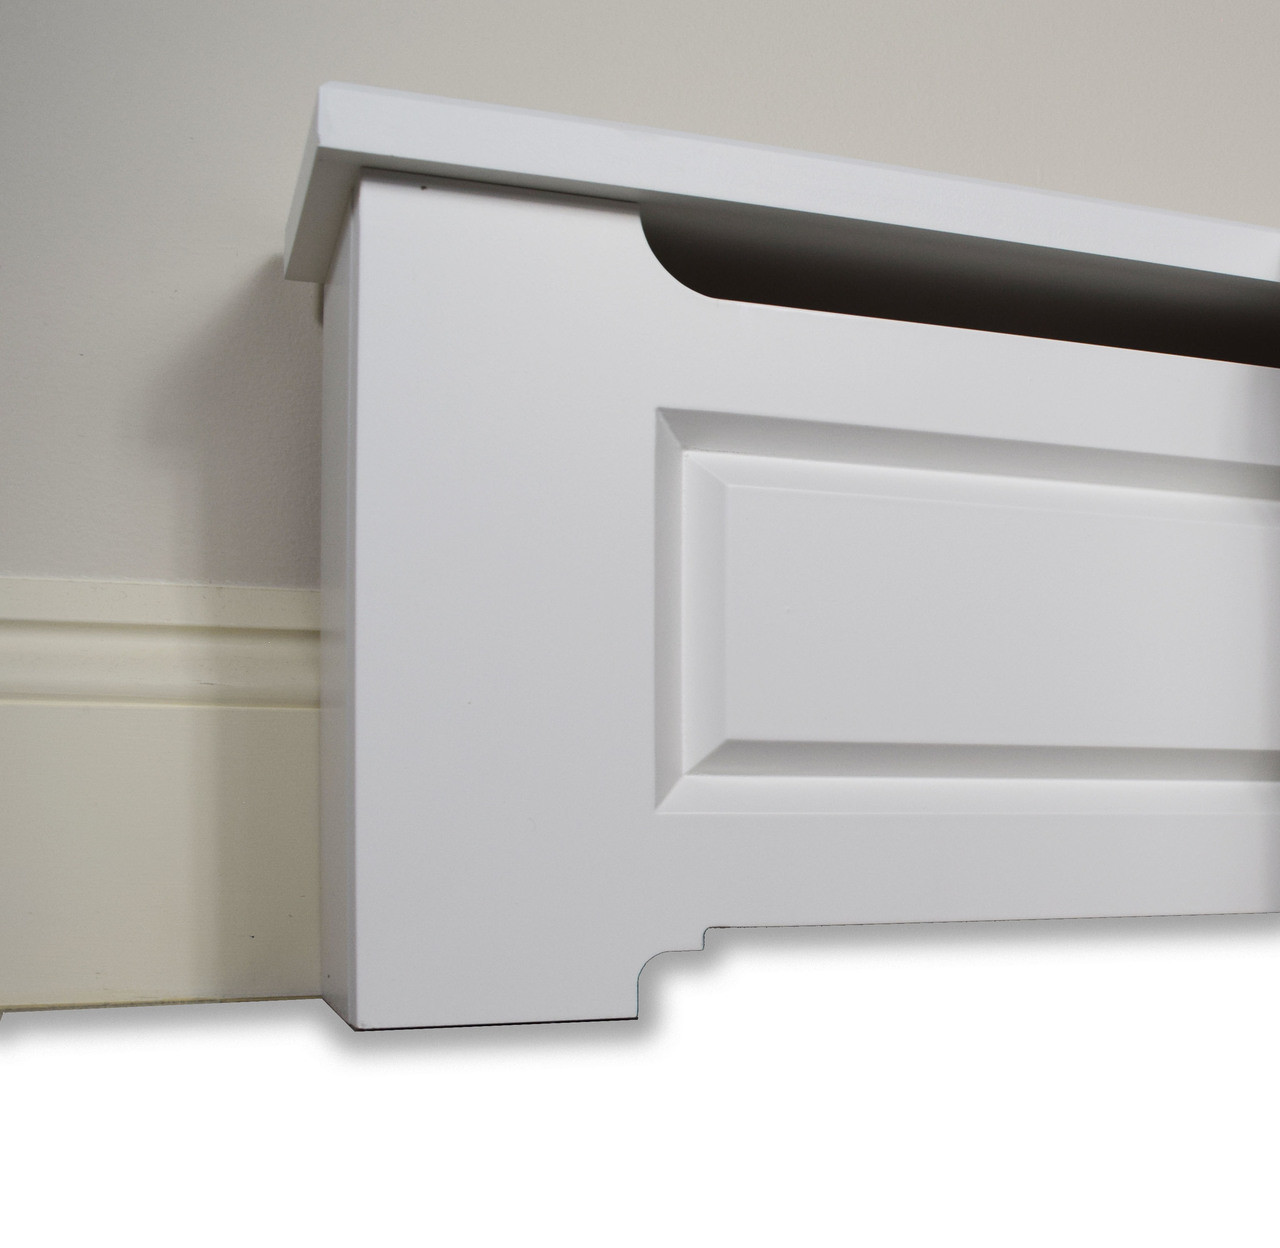 Craftsman Style 3 Ft Wood Baseboard Heater Cover Kit In